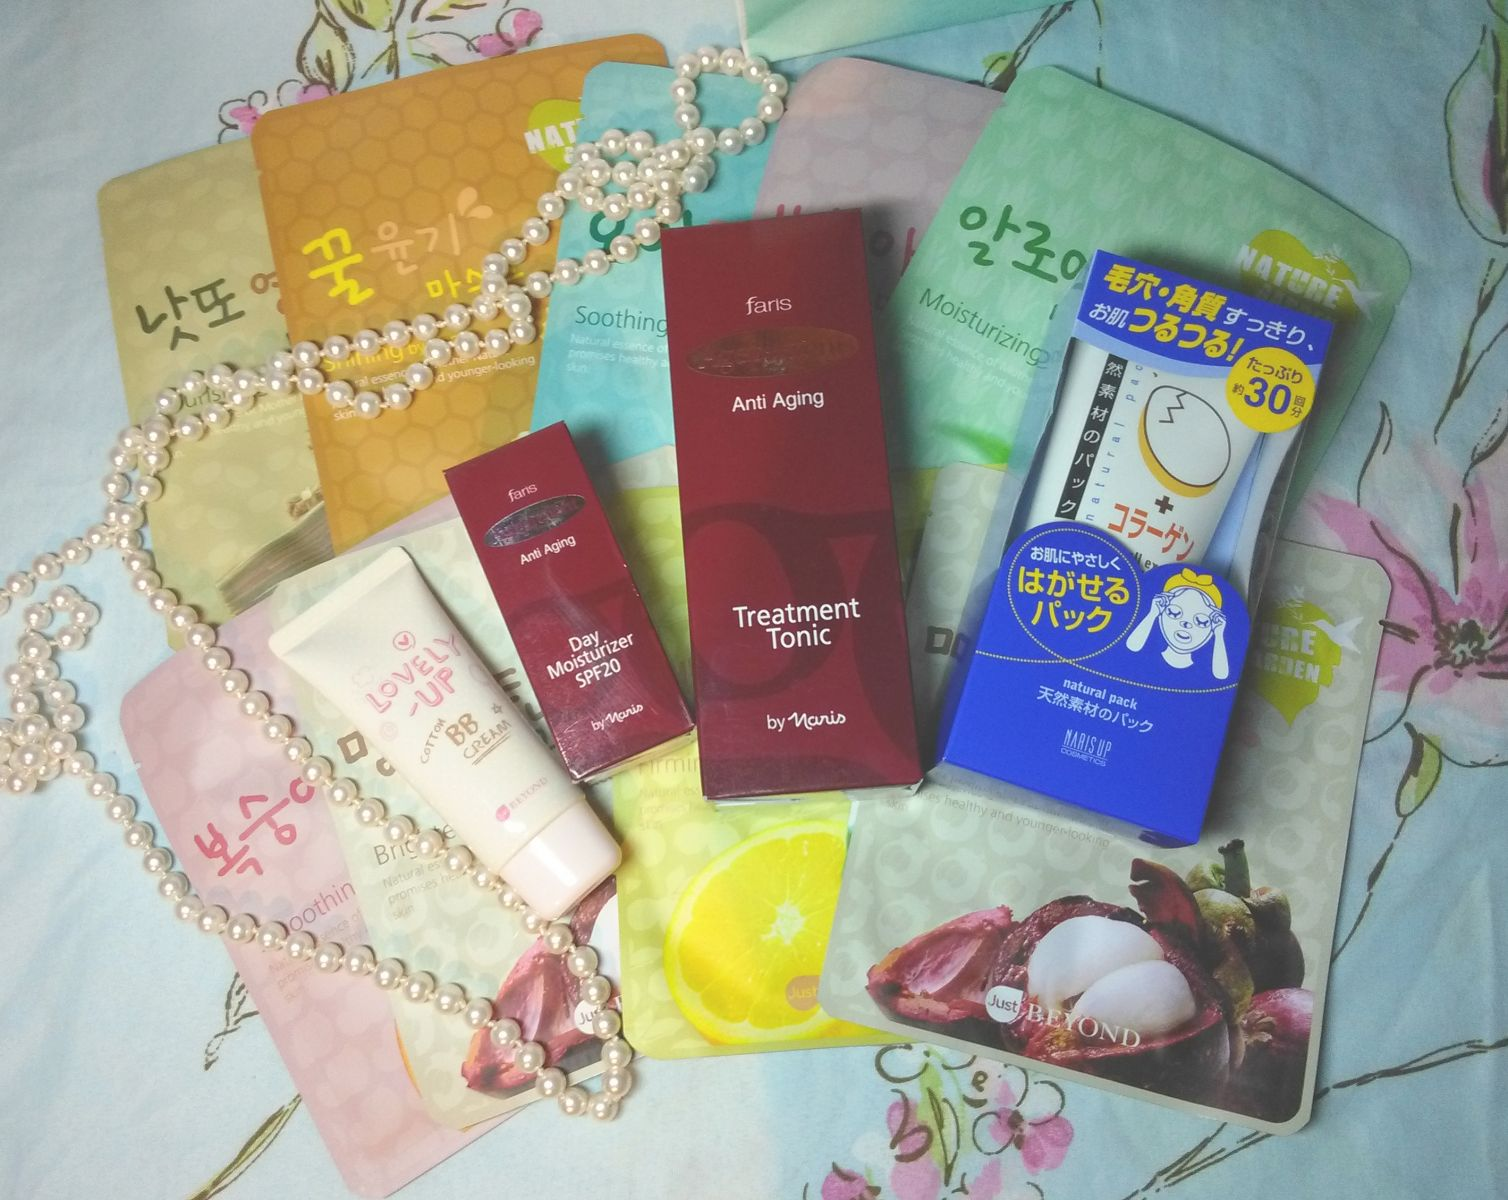 Lovely-up Cotton BB Cream